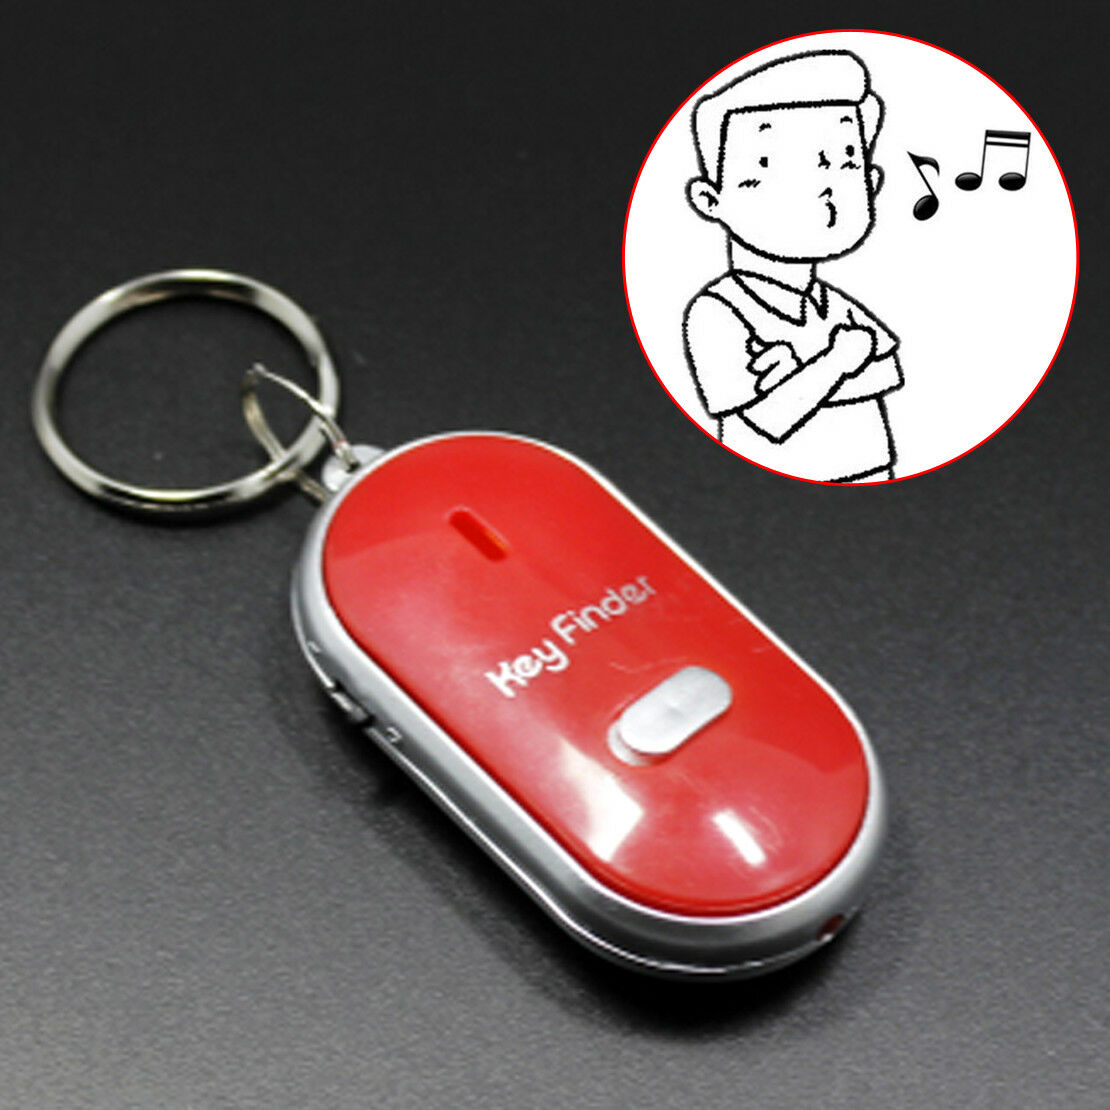 1x LED Key Finder Locator Find Lost Keys Keychain Whistle Sound Key Rings Blue